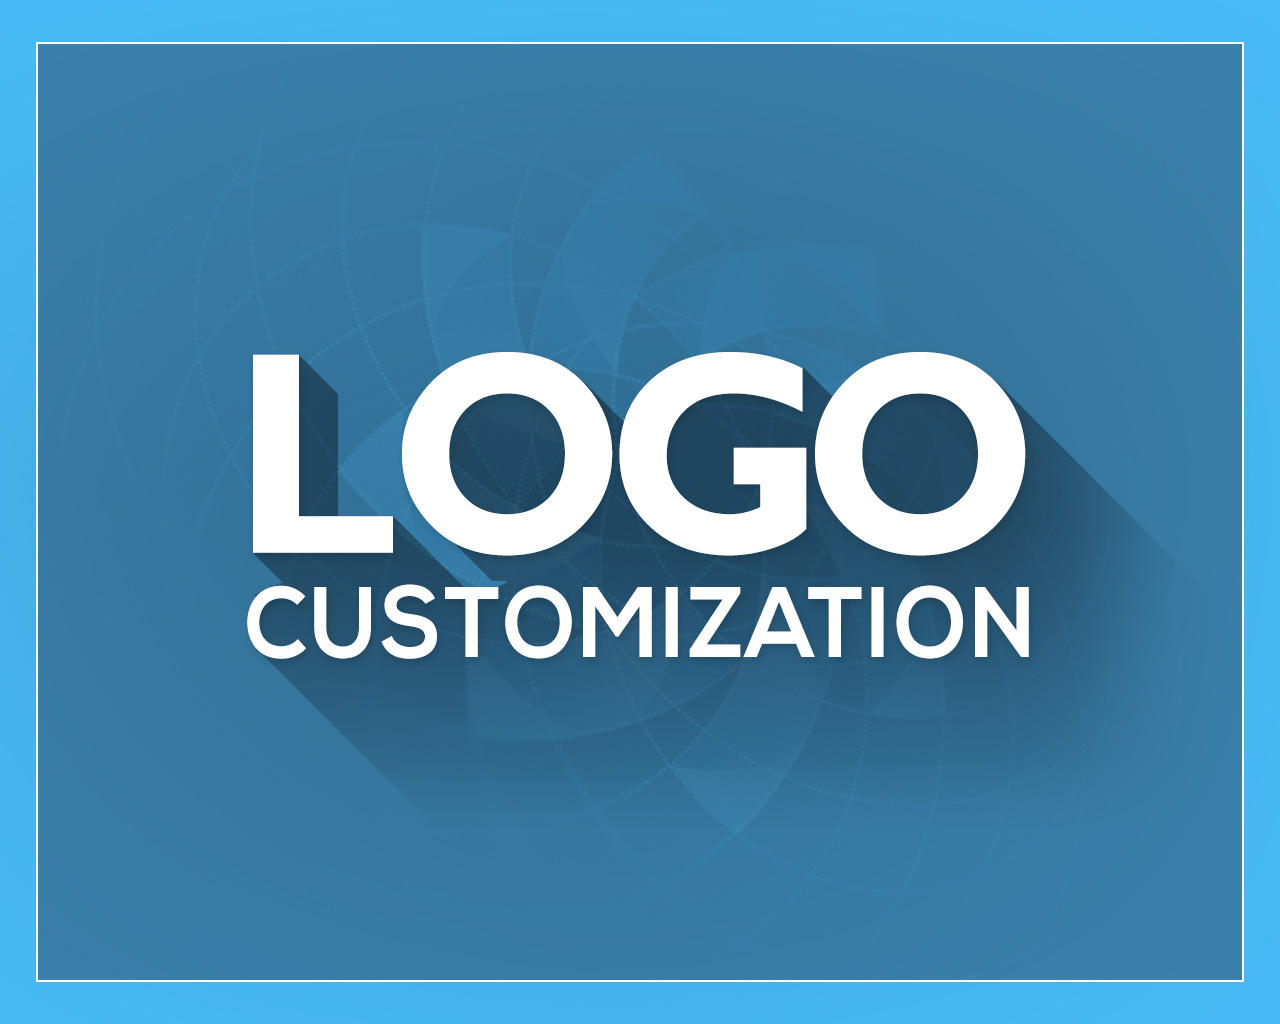 bizlogo custom logos amp exclusive readymade logos for sale